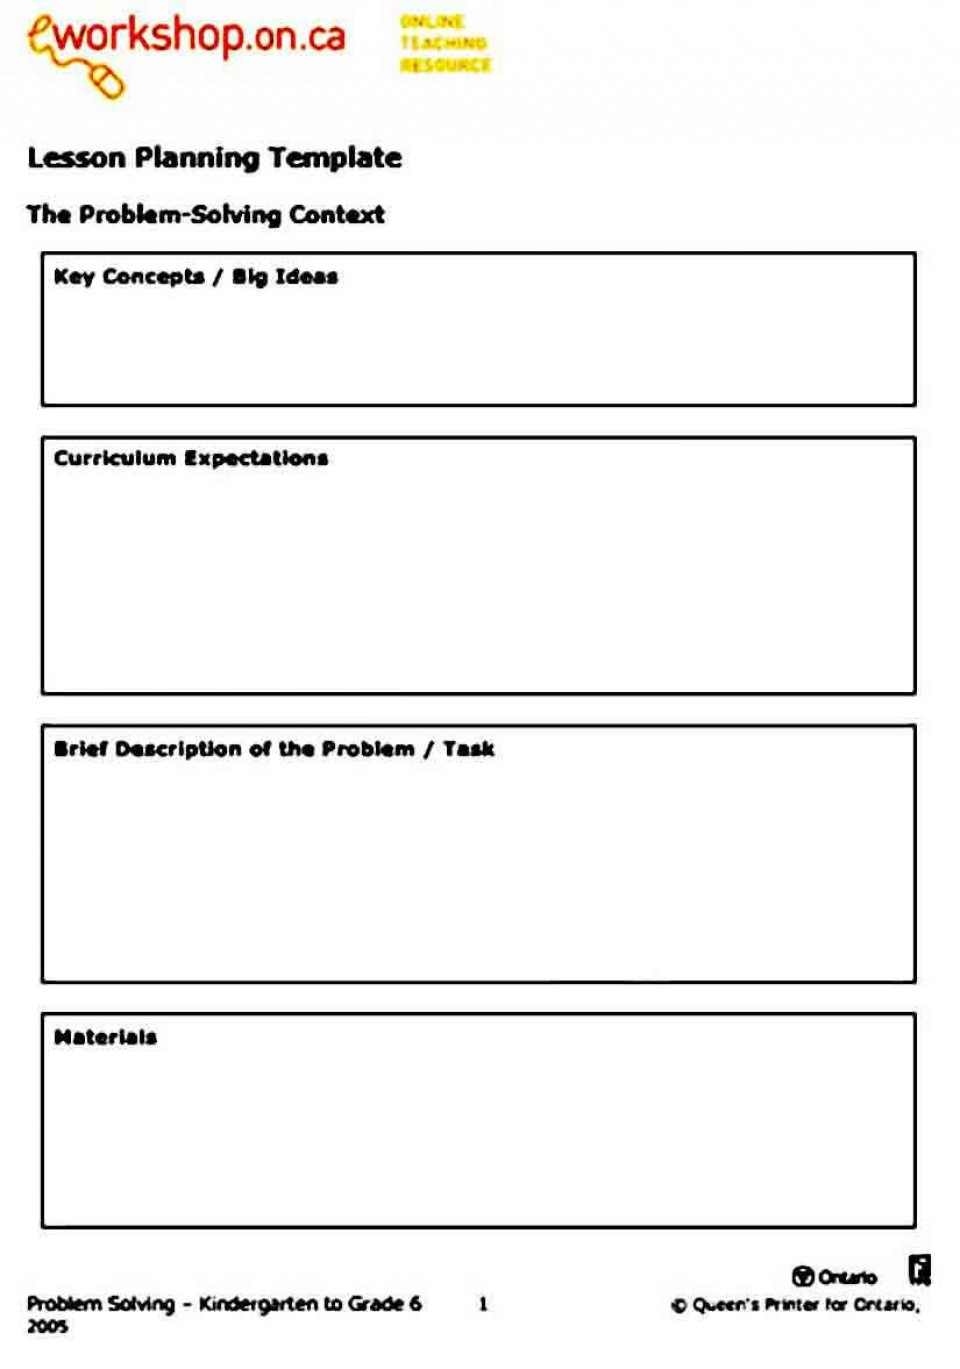 008 Surprising Simple Lesson Plan Template High Definition  Basic Format For Preschool Doc Kindergarten960